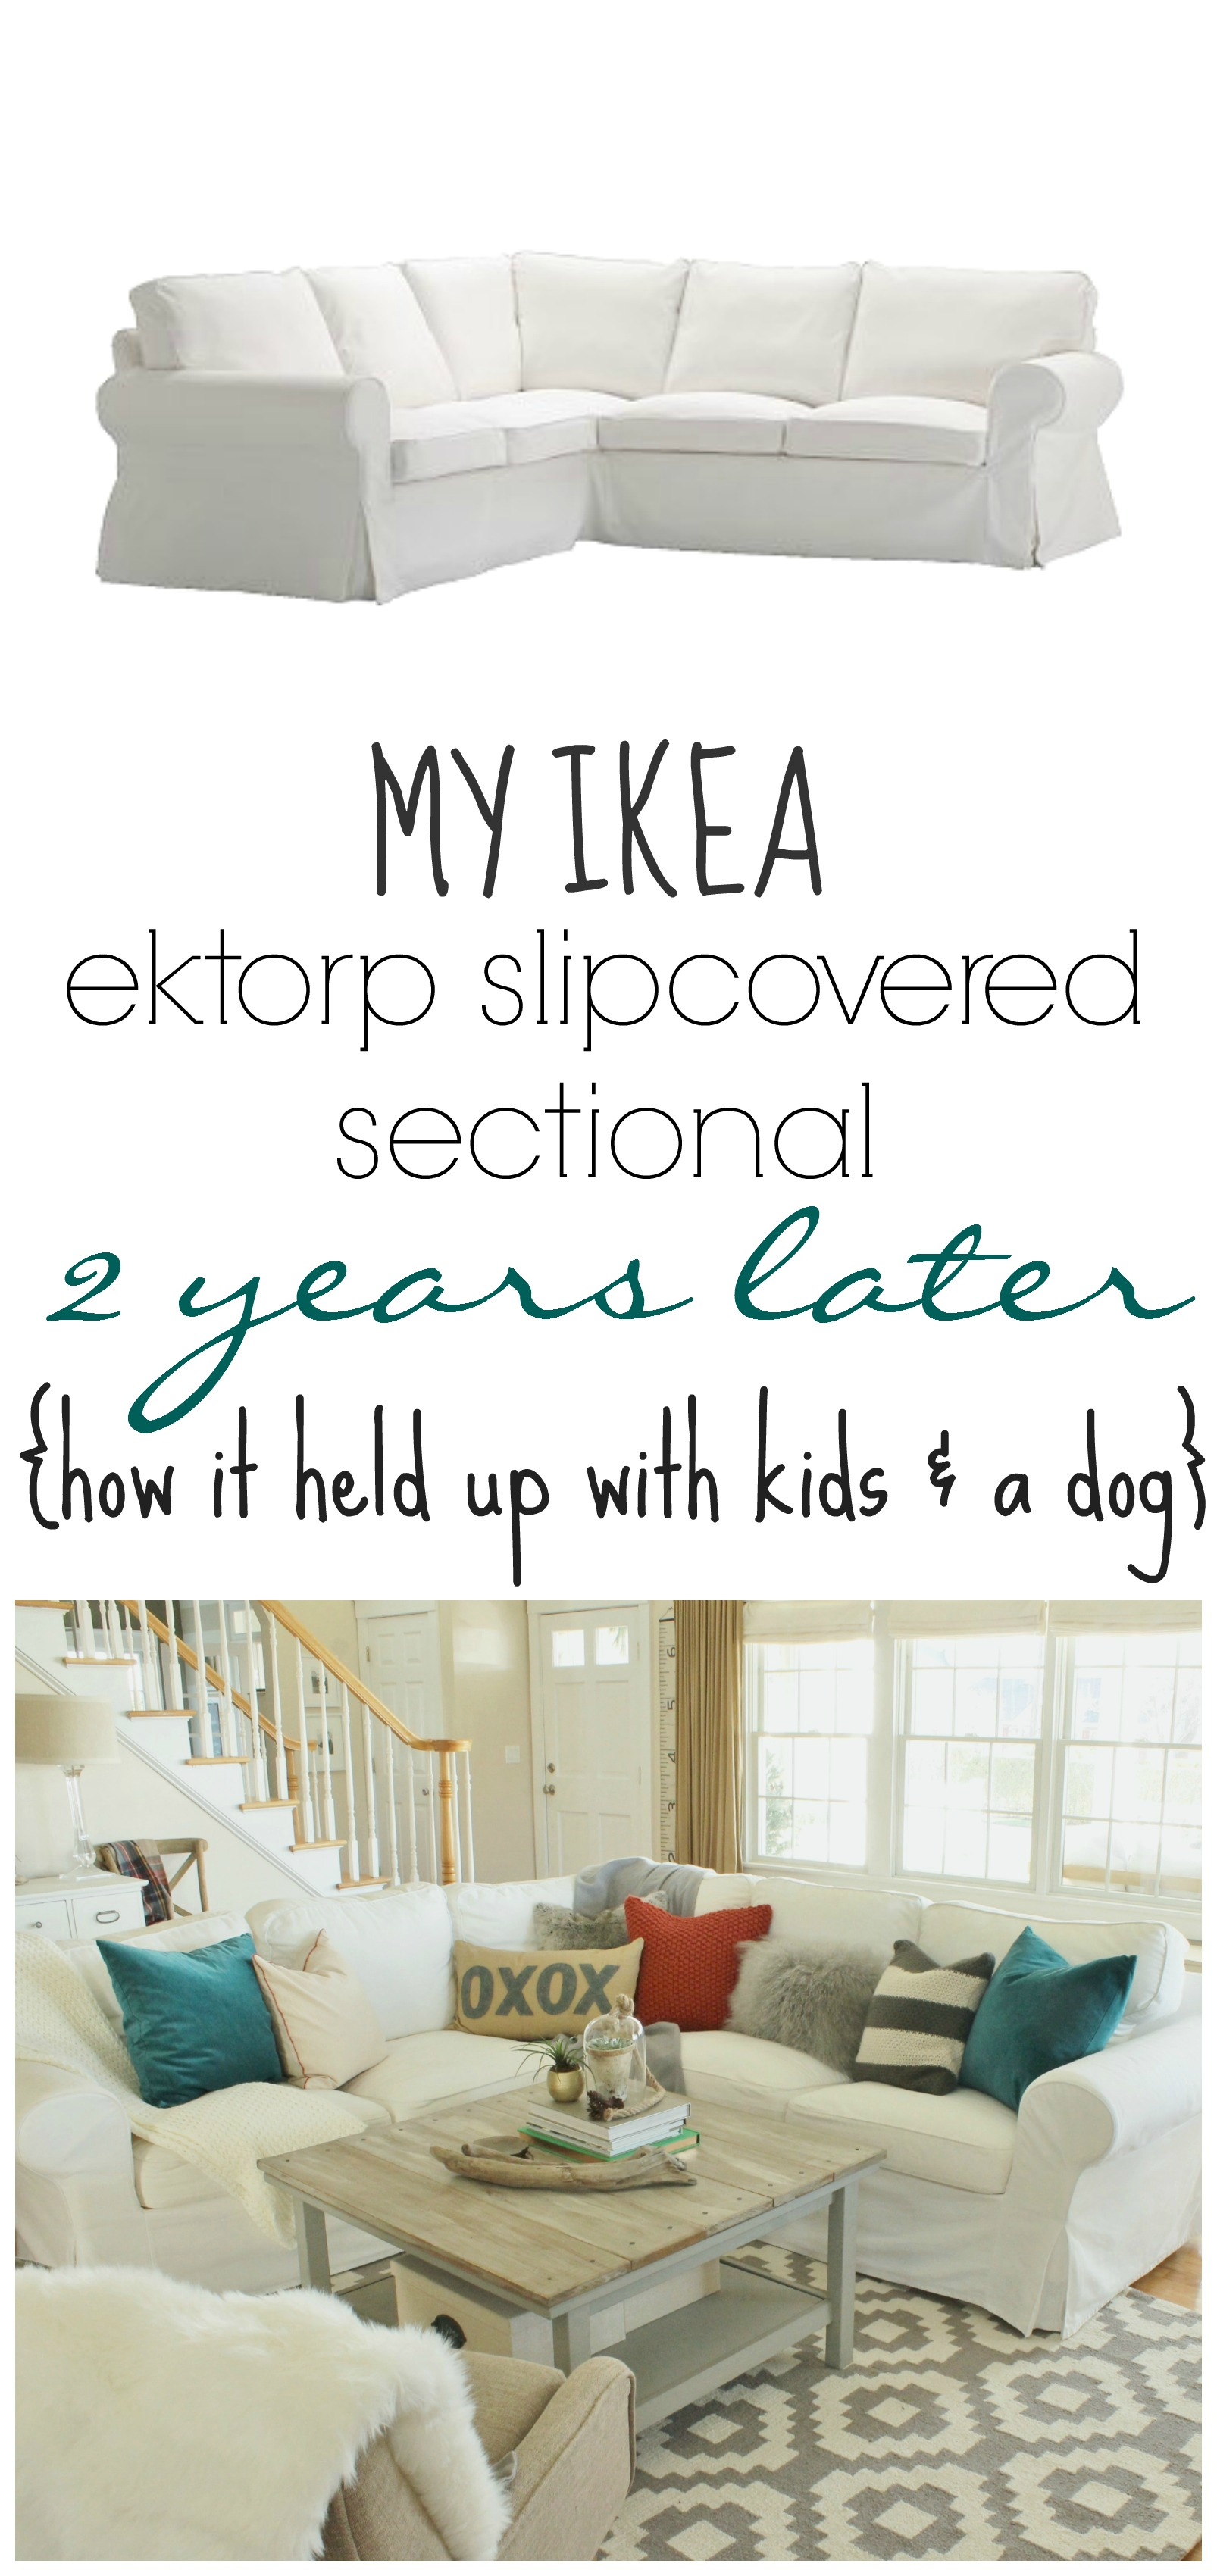 My Ikea Ektorp Slipcover Sectional 2 Years Later